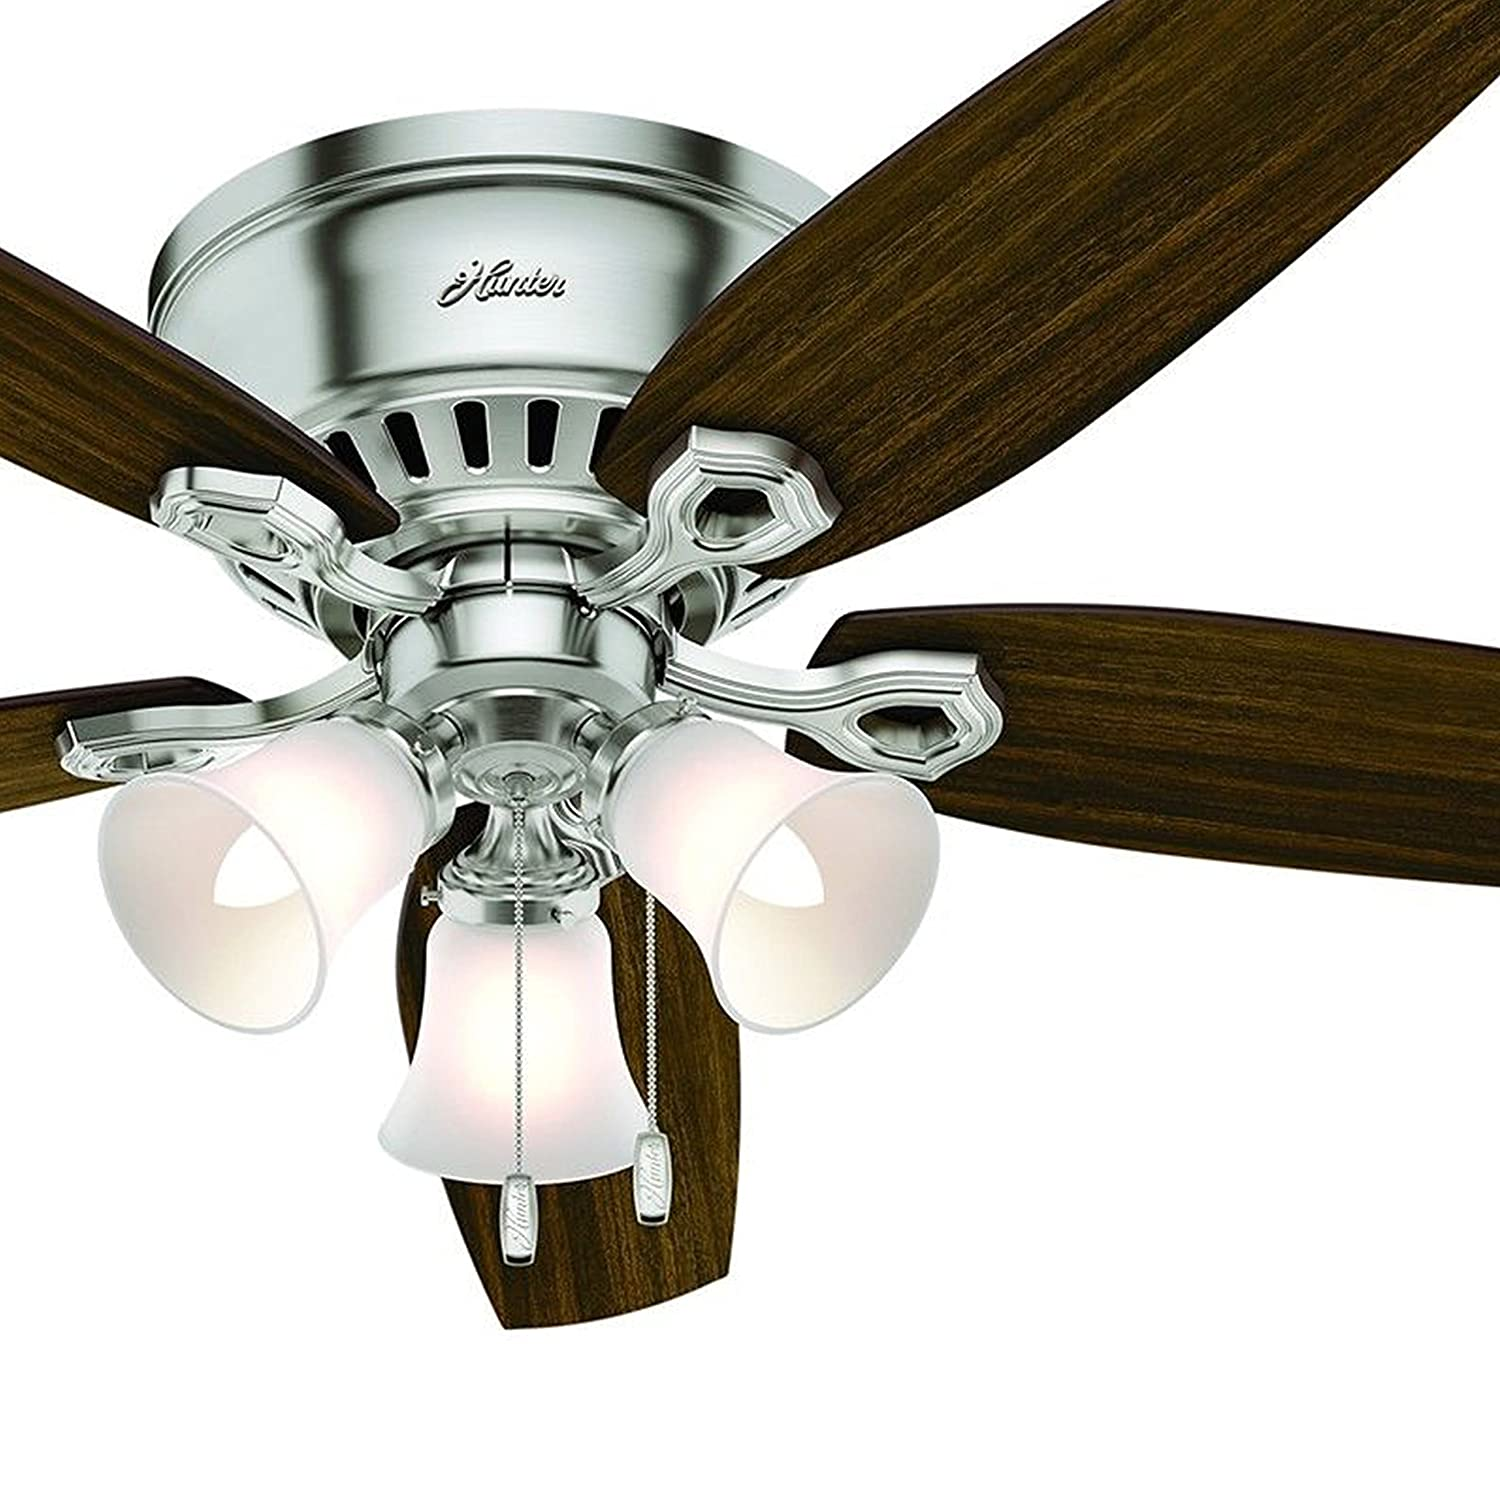 Hunter Fan 52 inch Low Profile Brushed Nickel Indoor Ceiling Fan with Light Kit Renewed